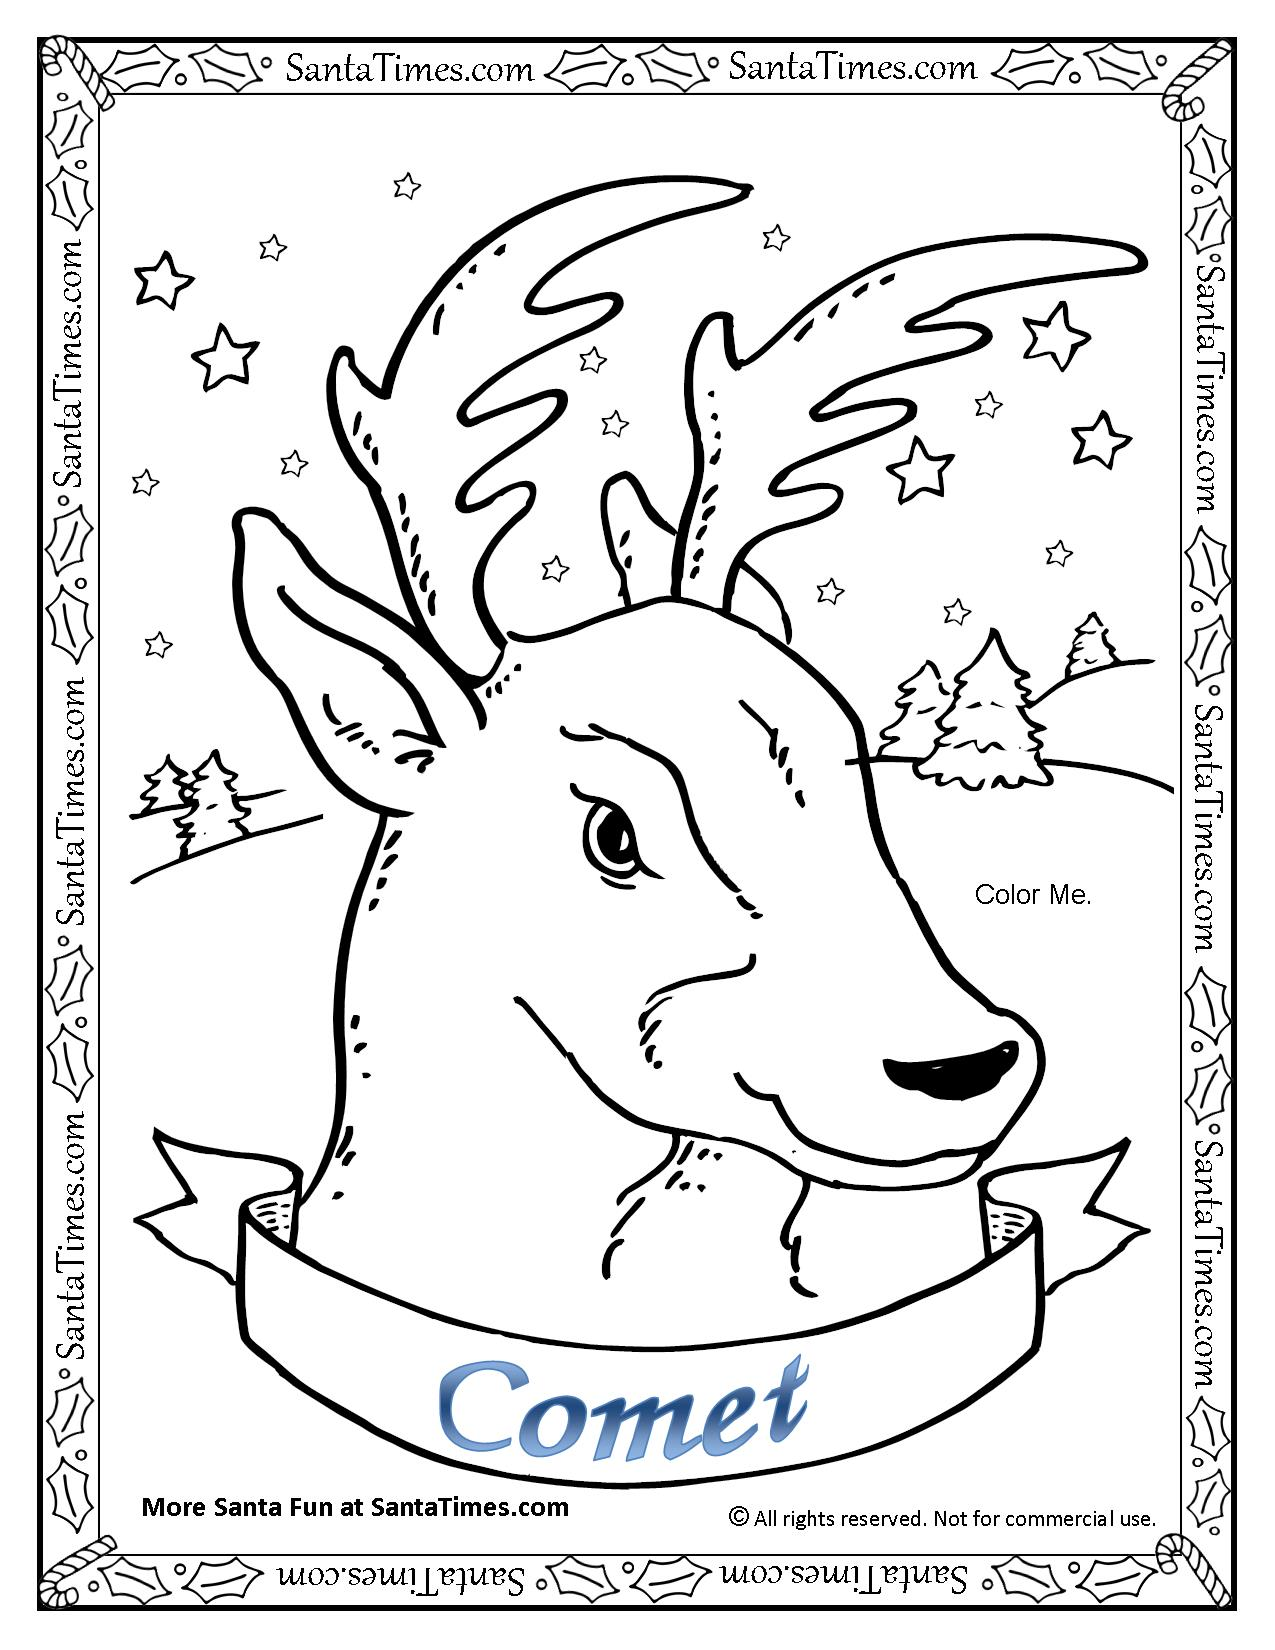 Comet The Reindeer Printable Coloring Page